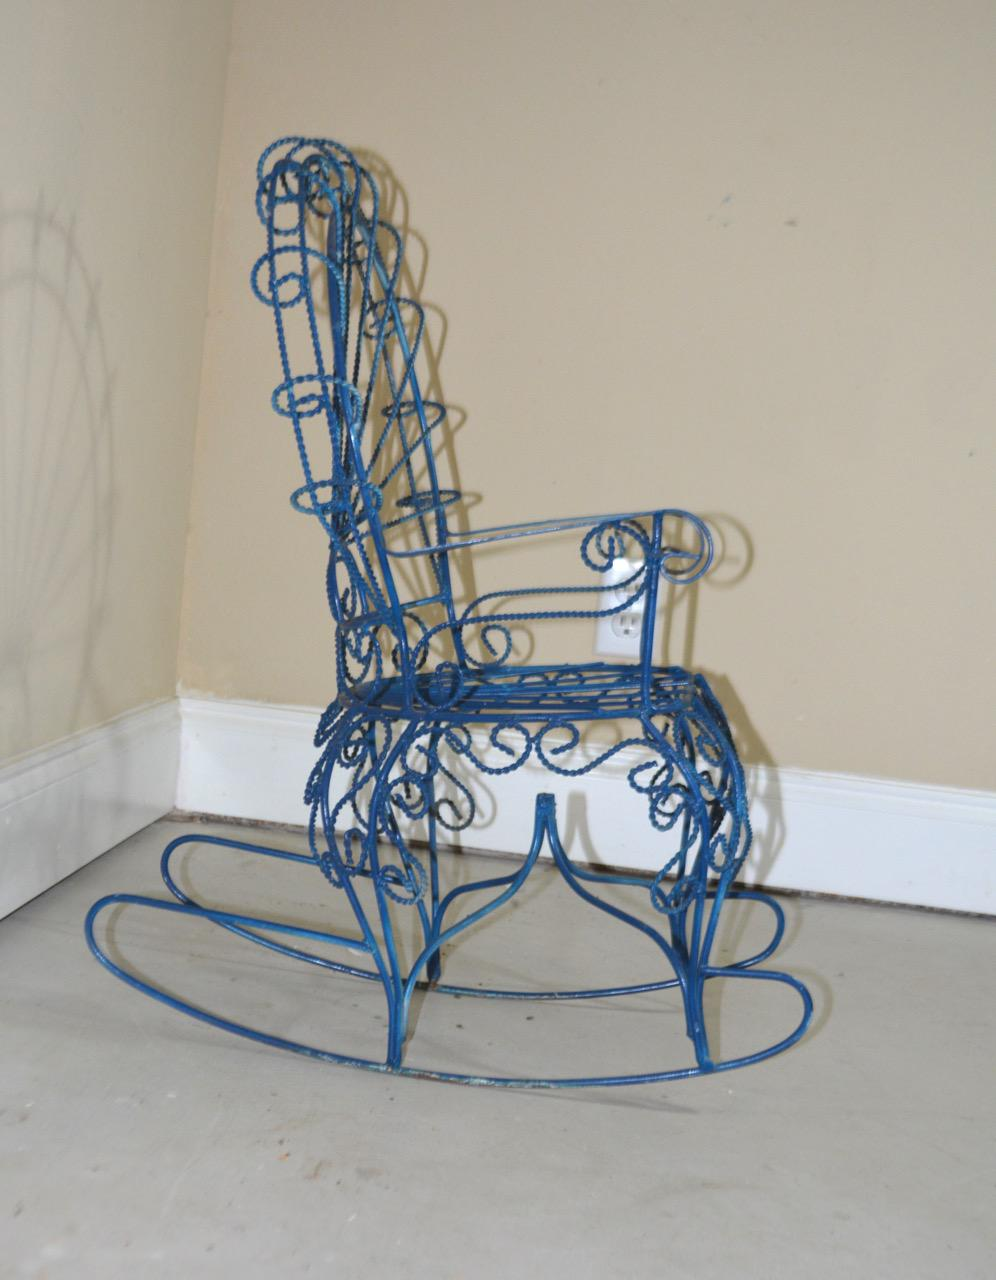 Childu0027s Blue Wrought Iron Peacock Rocking Chair   Image 4 ...